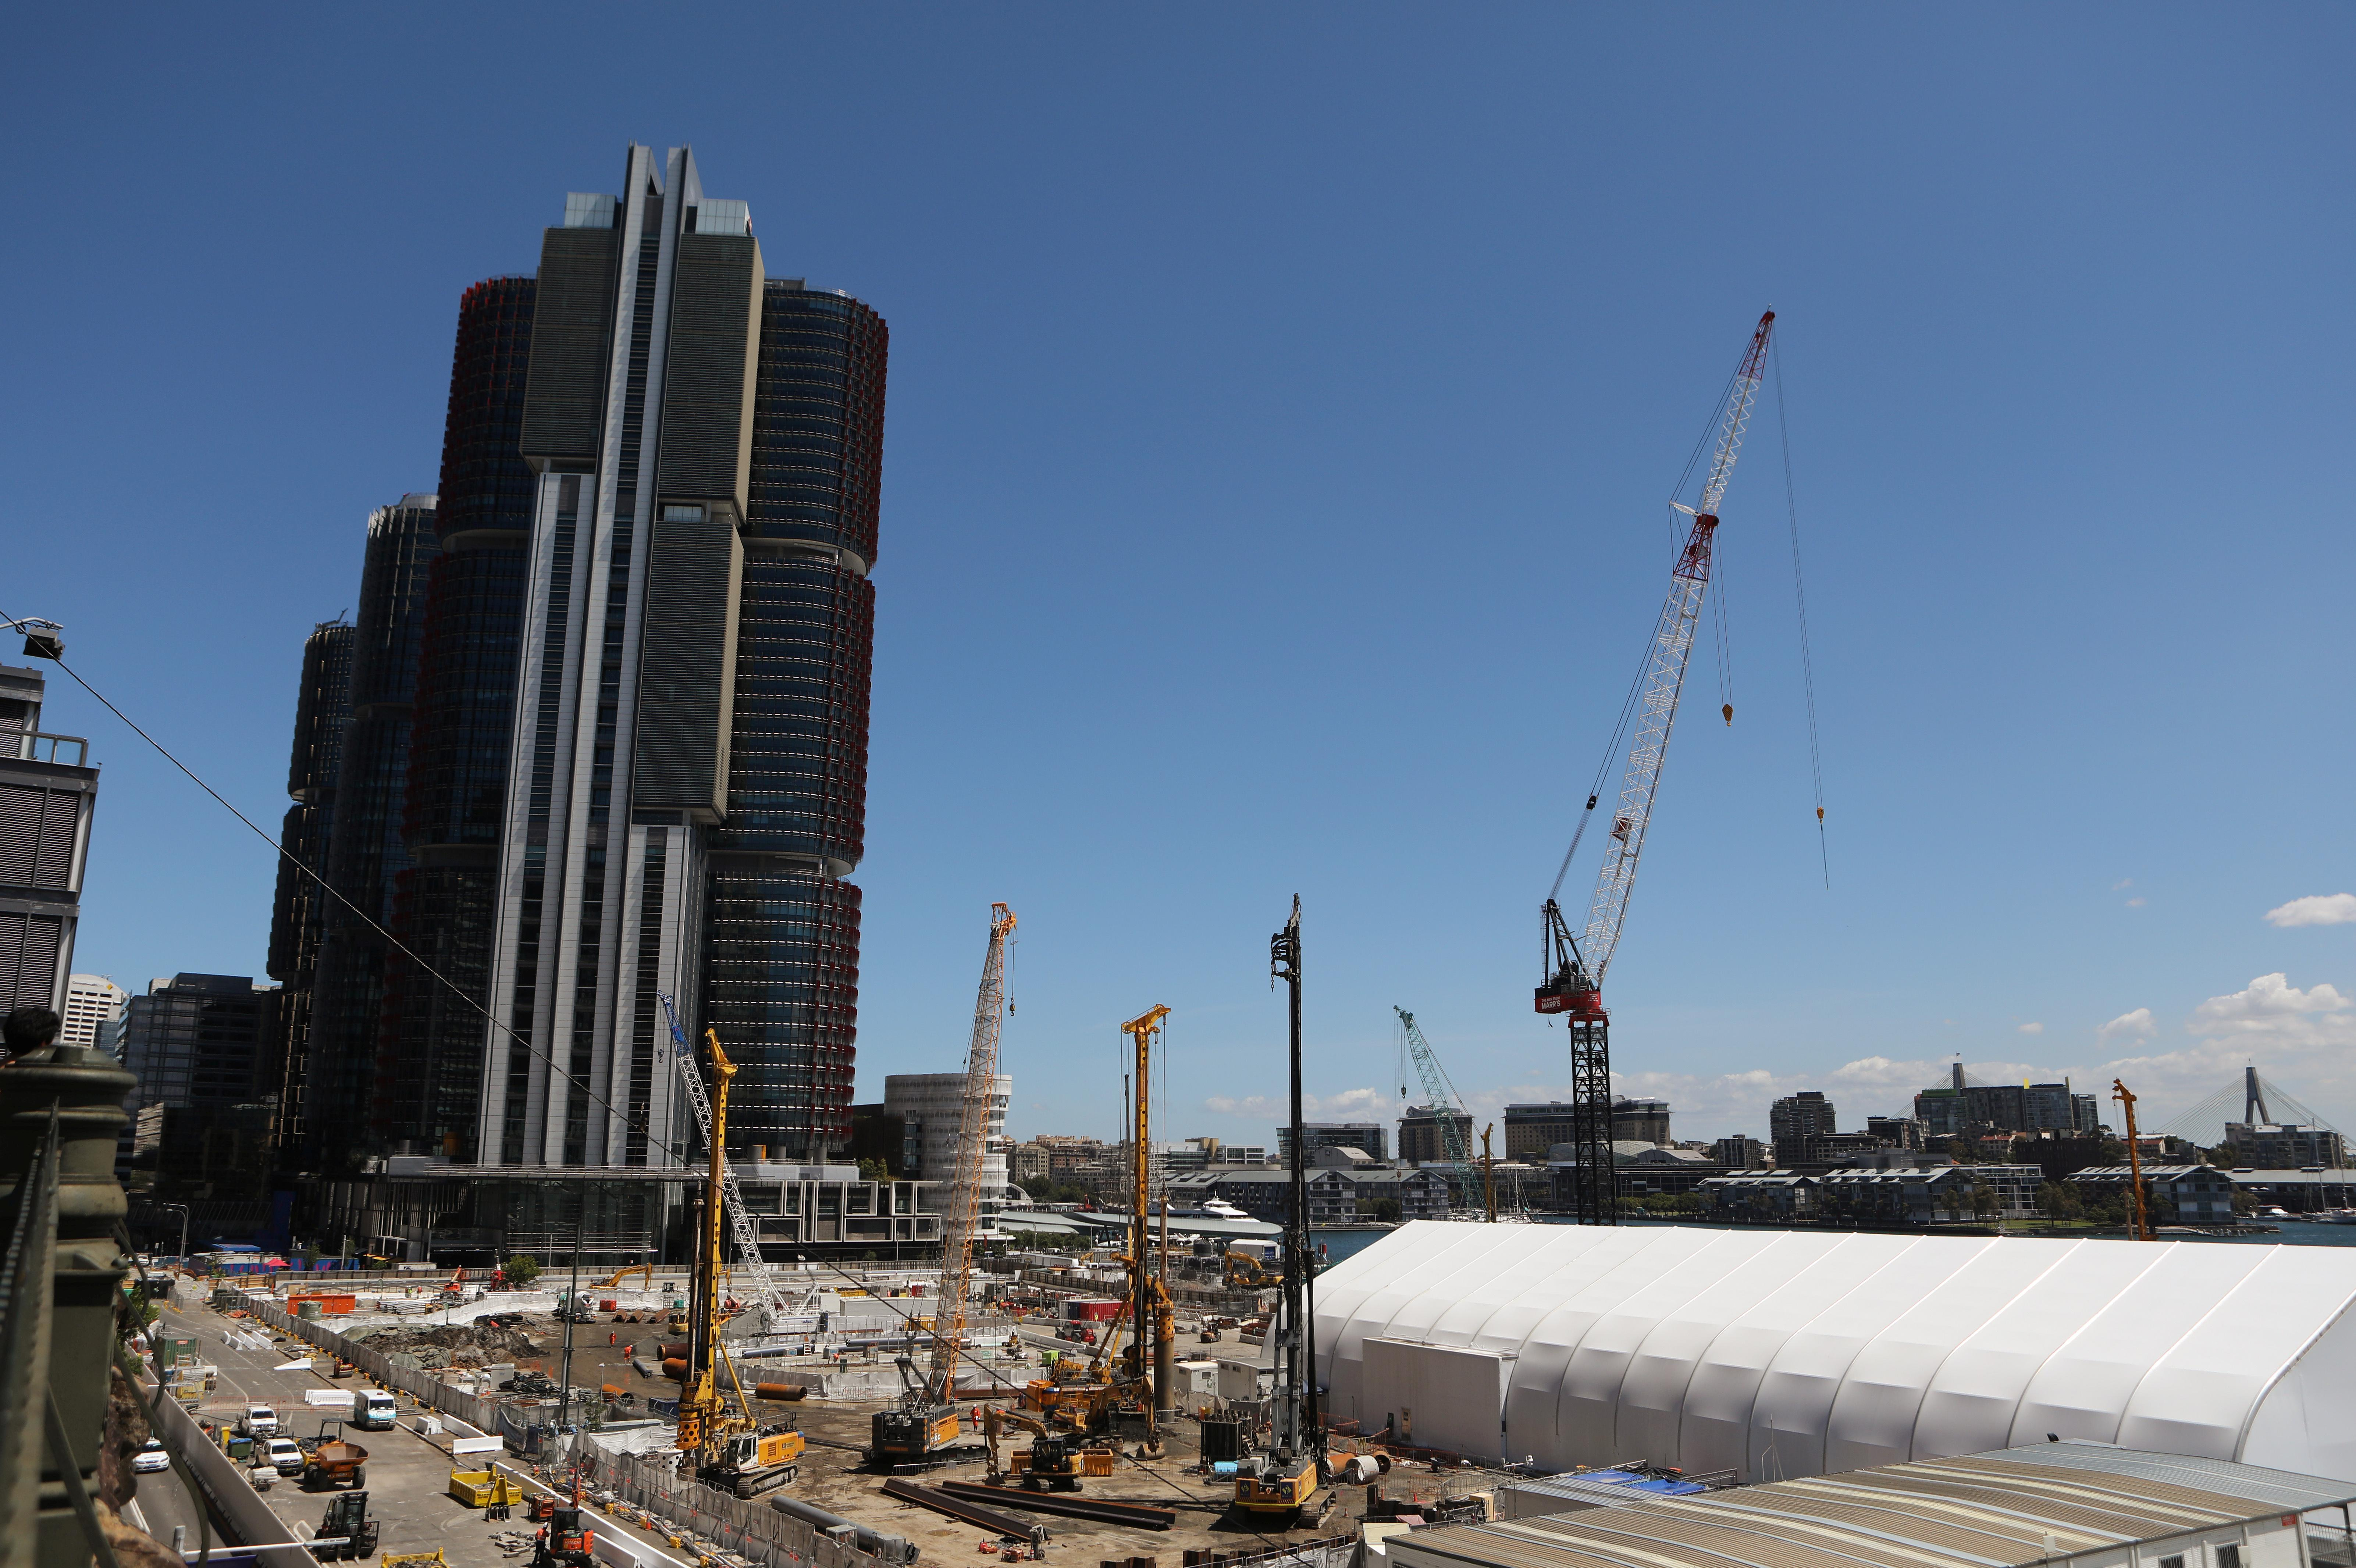 Cranes and heavy machinery are seen on a huge construction site next to Barangaroo building complex in Sydney